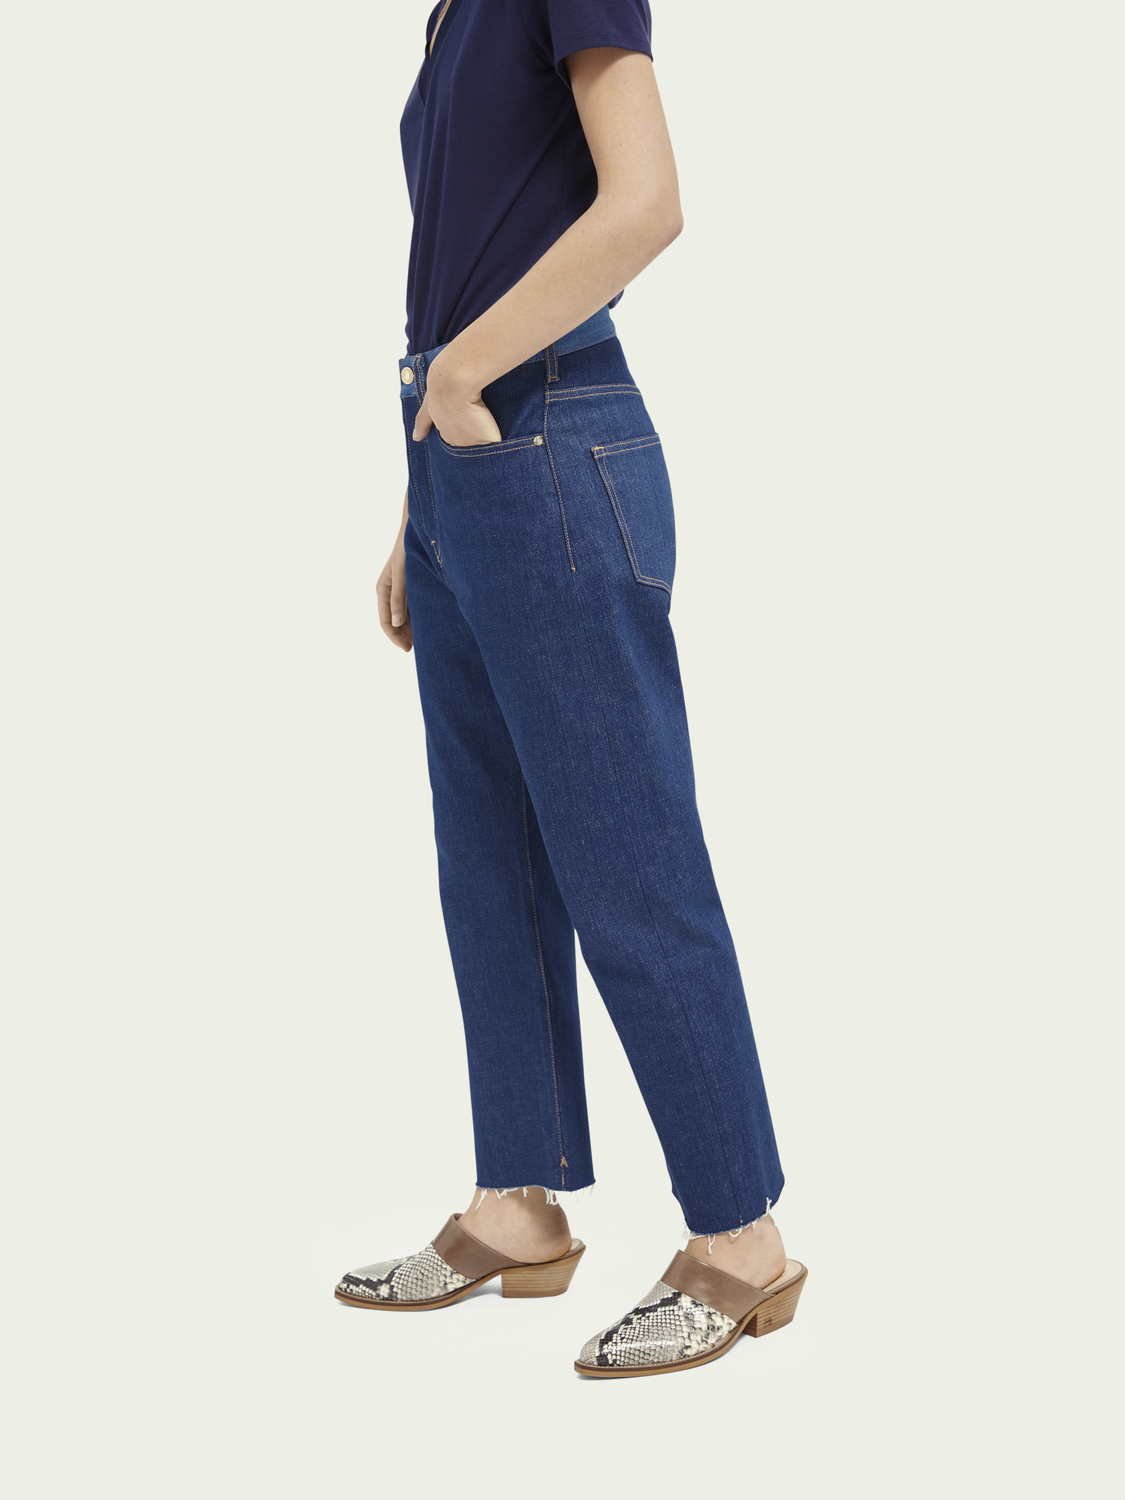 Women Extra boyfriend jeans - Dress For Adventure